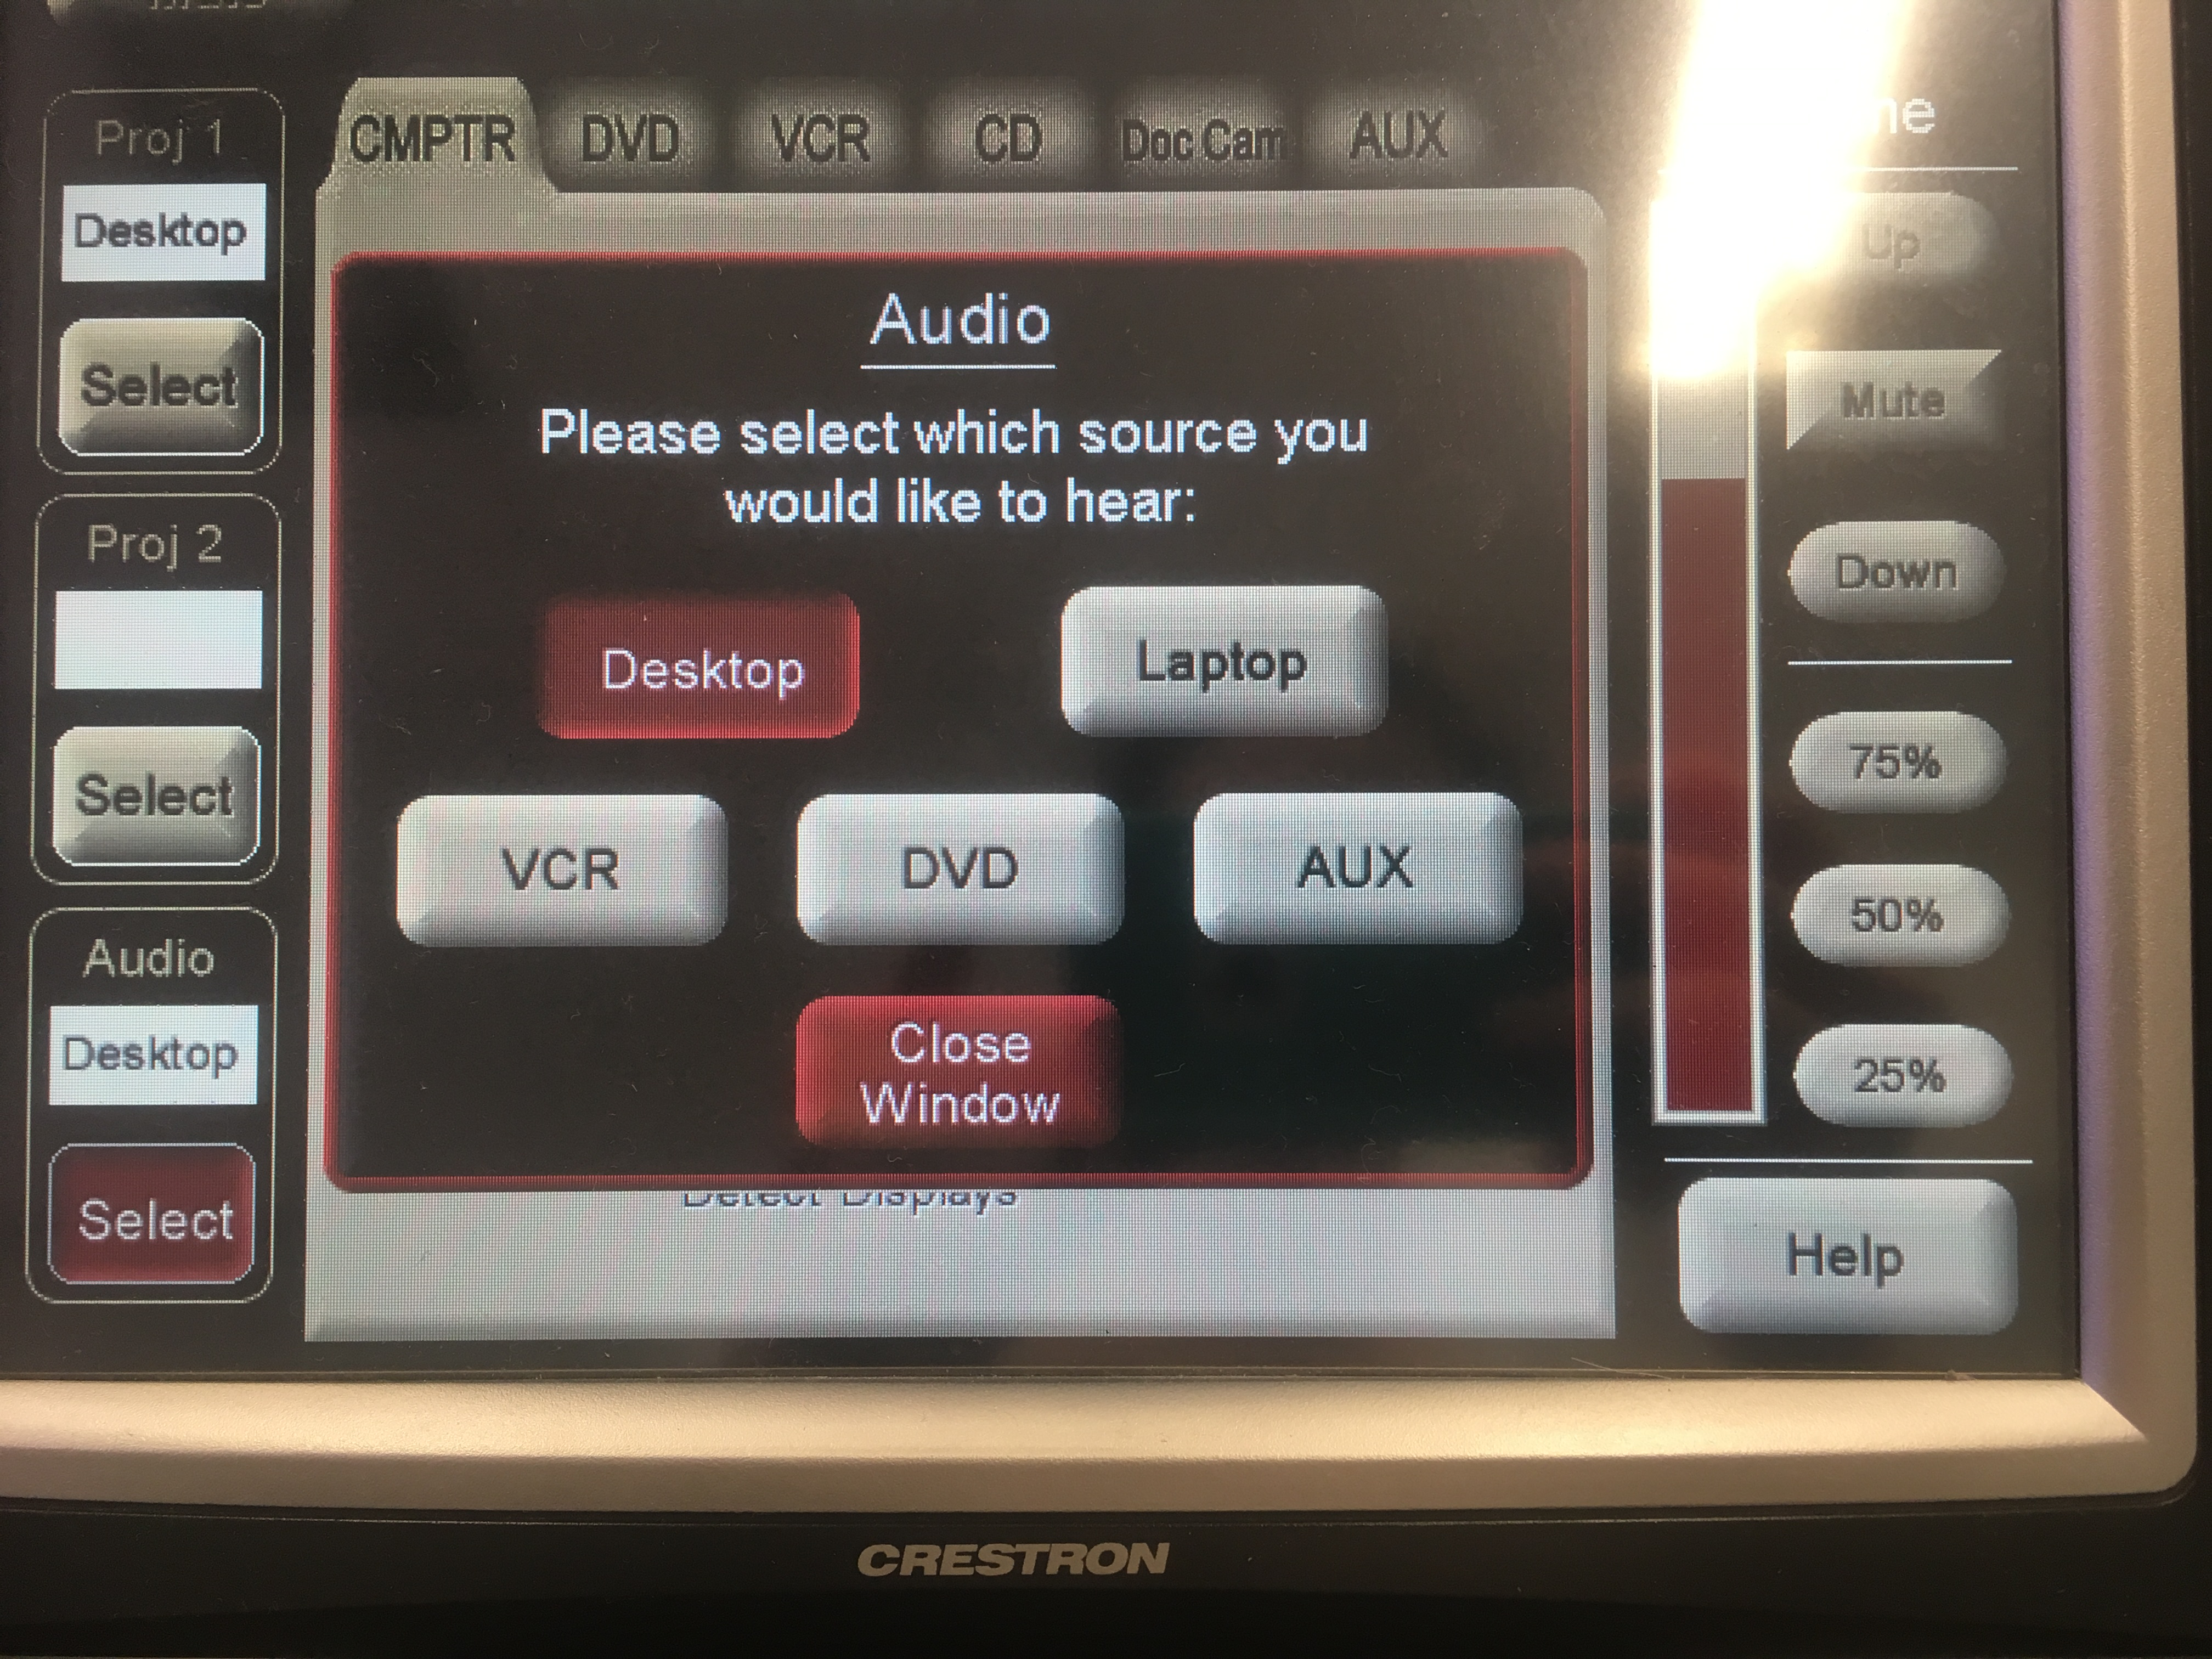 Photo of the crestron control touch panel with the computer tab active and the audio option selected